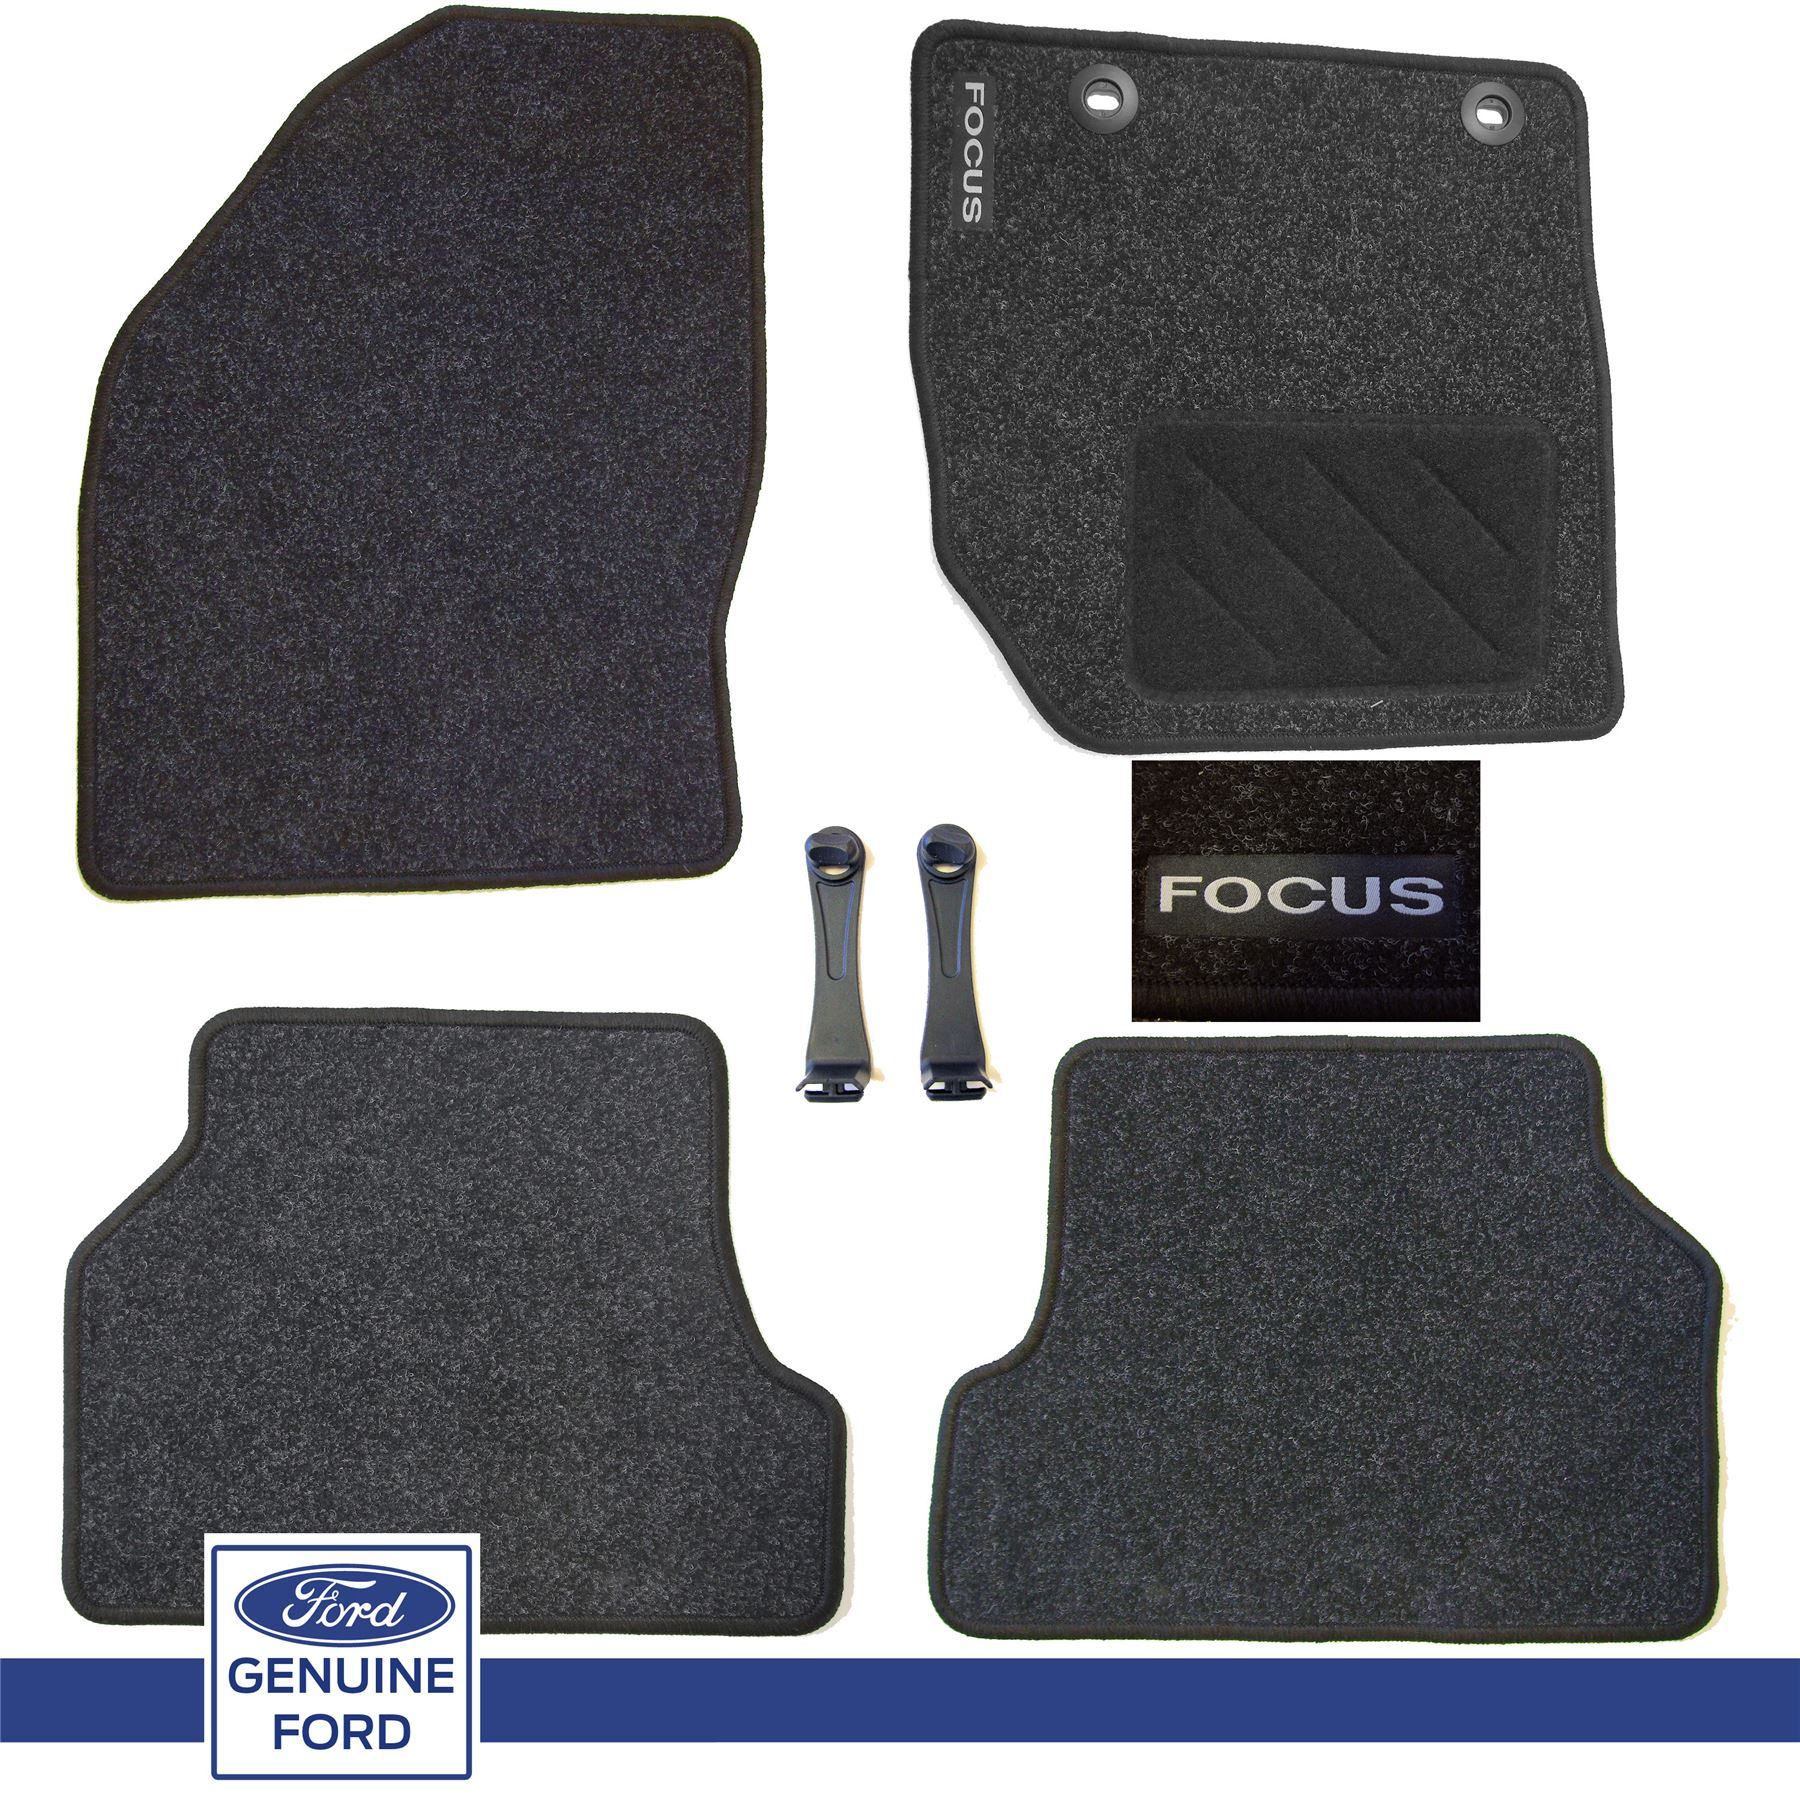 FORD FOCUS ESTATE ALL YEARS NEW UNIVERSAL CAR CARPET FLOOR MATS SET OF 4